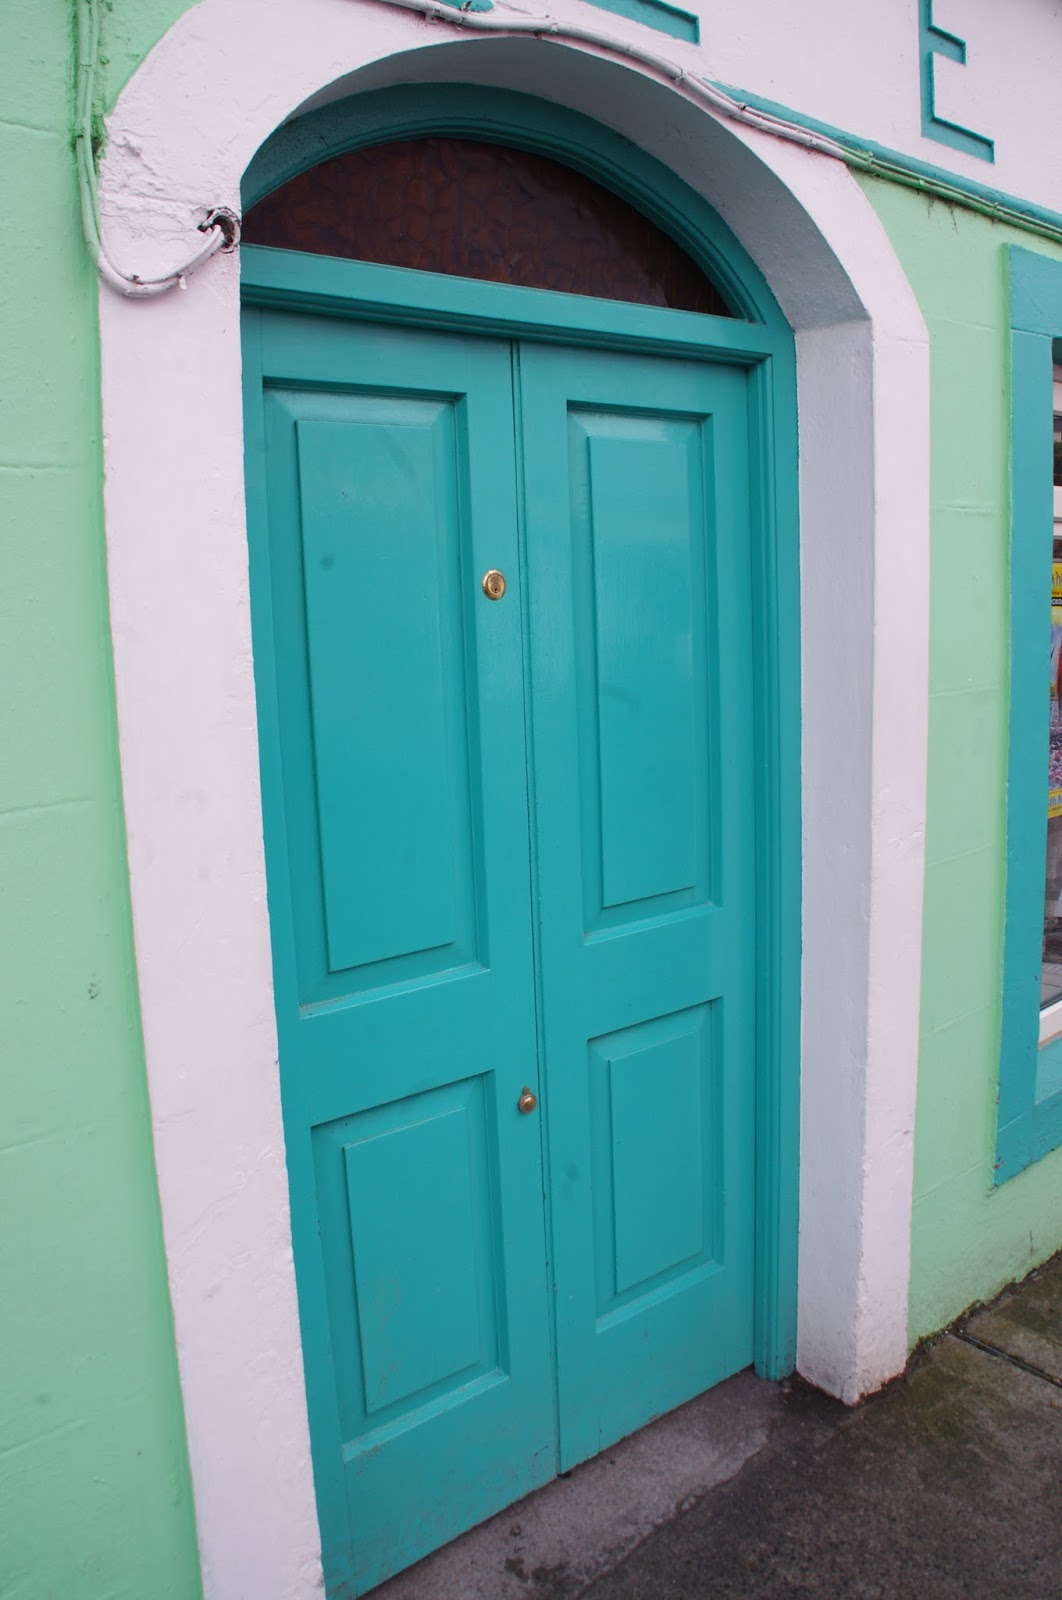 Bright blue door in Kinvarra Ireland